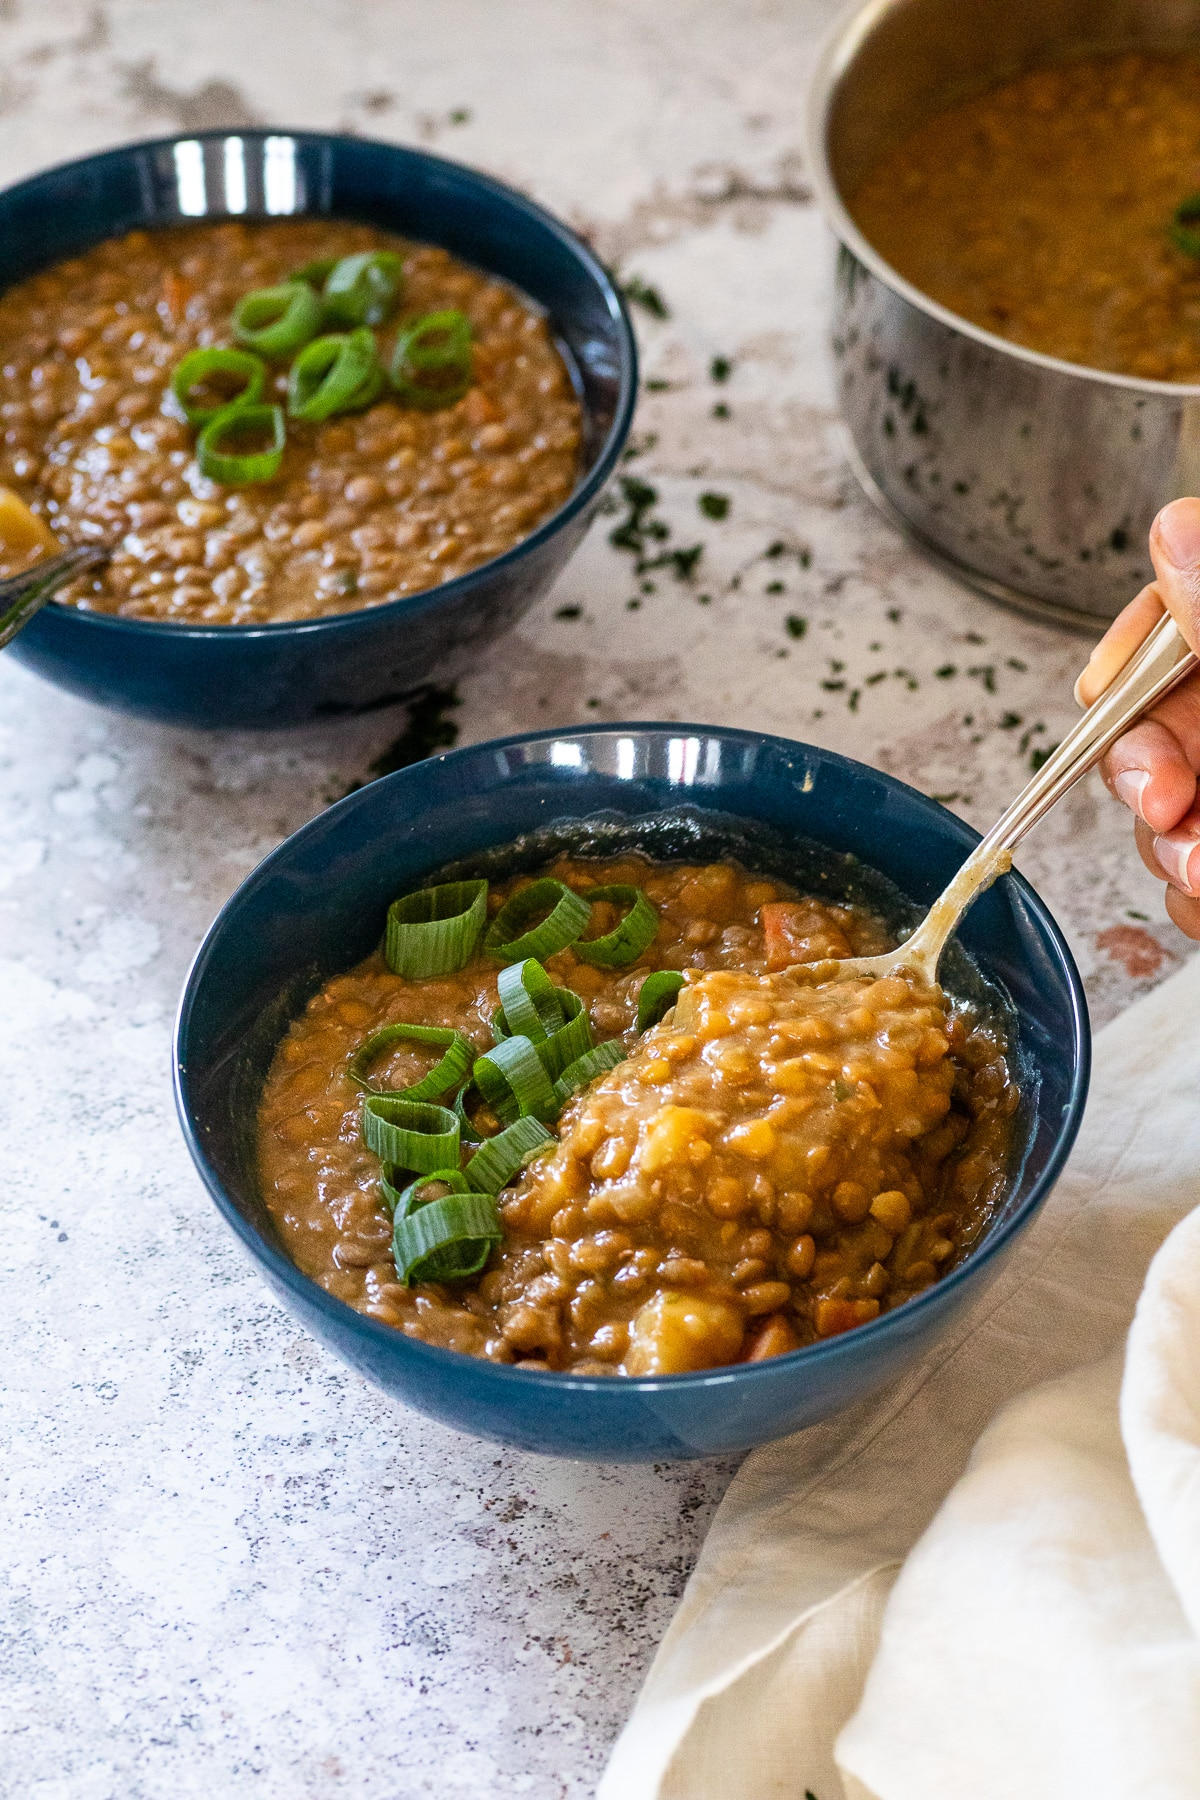 Holding a spoon over a bowl with lentil soup.